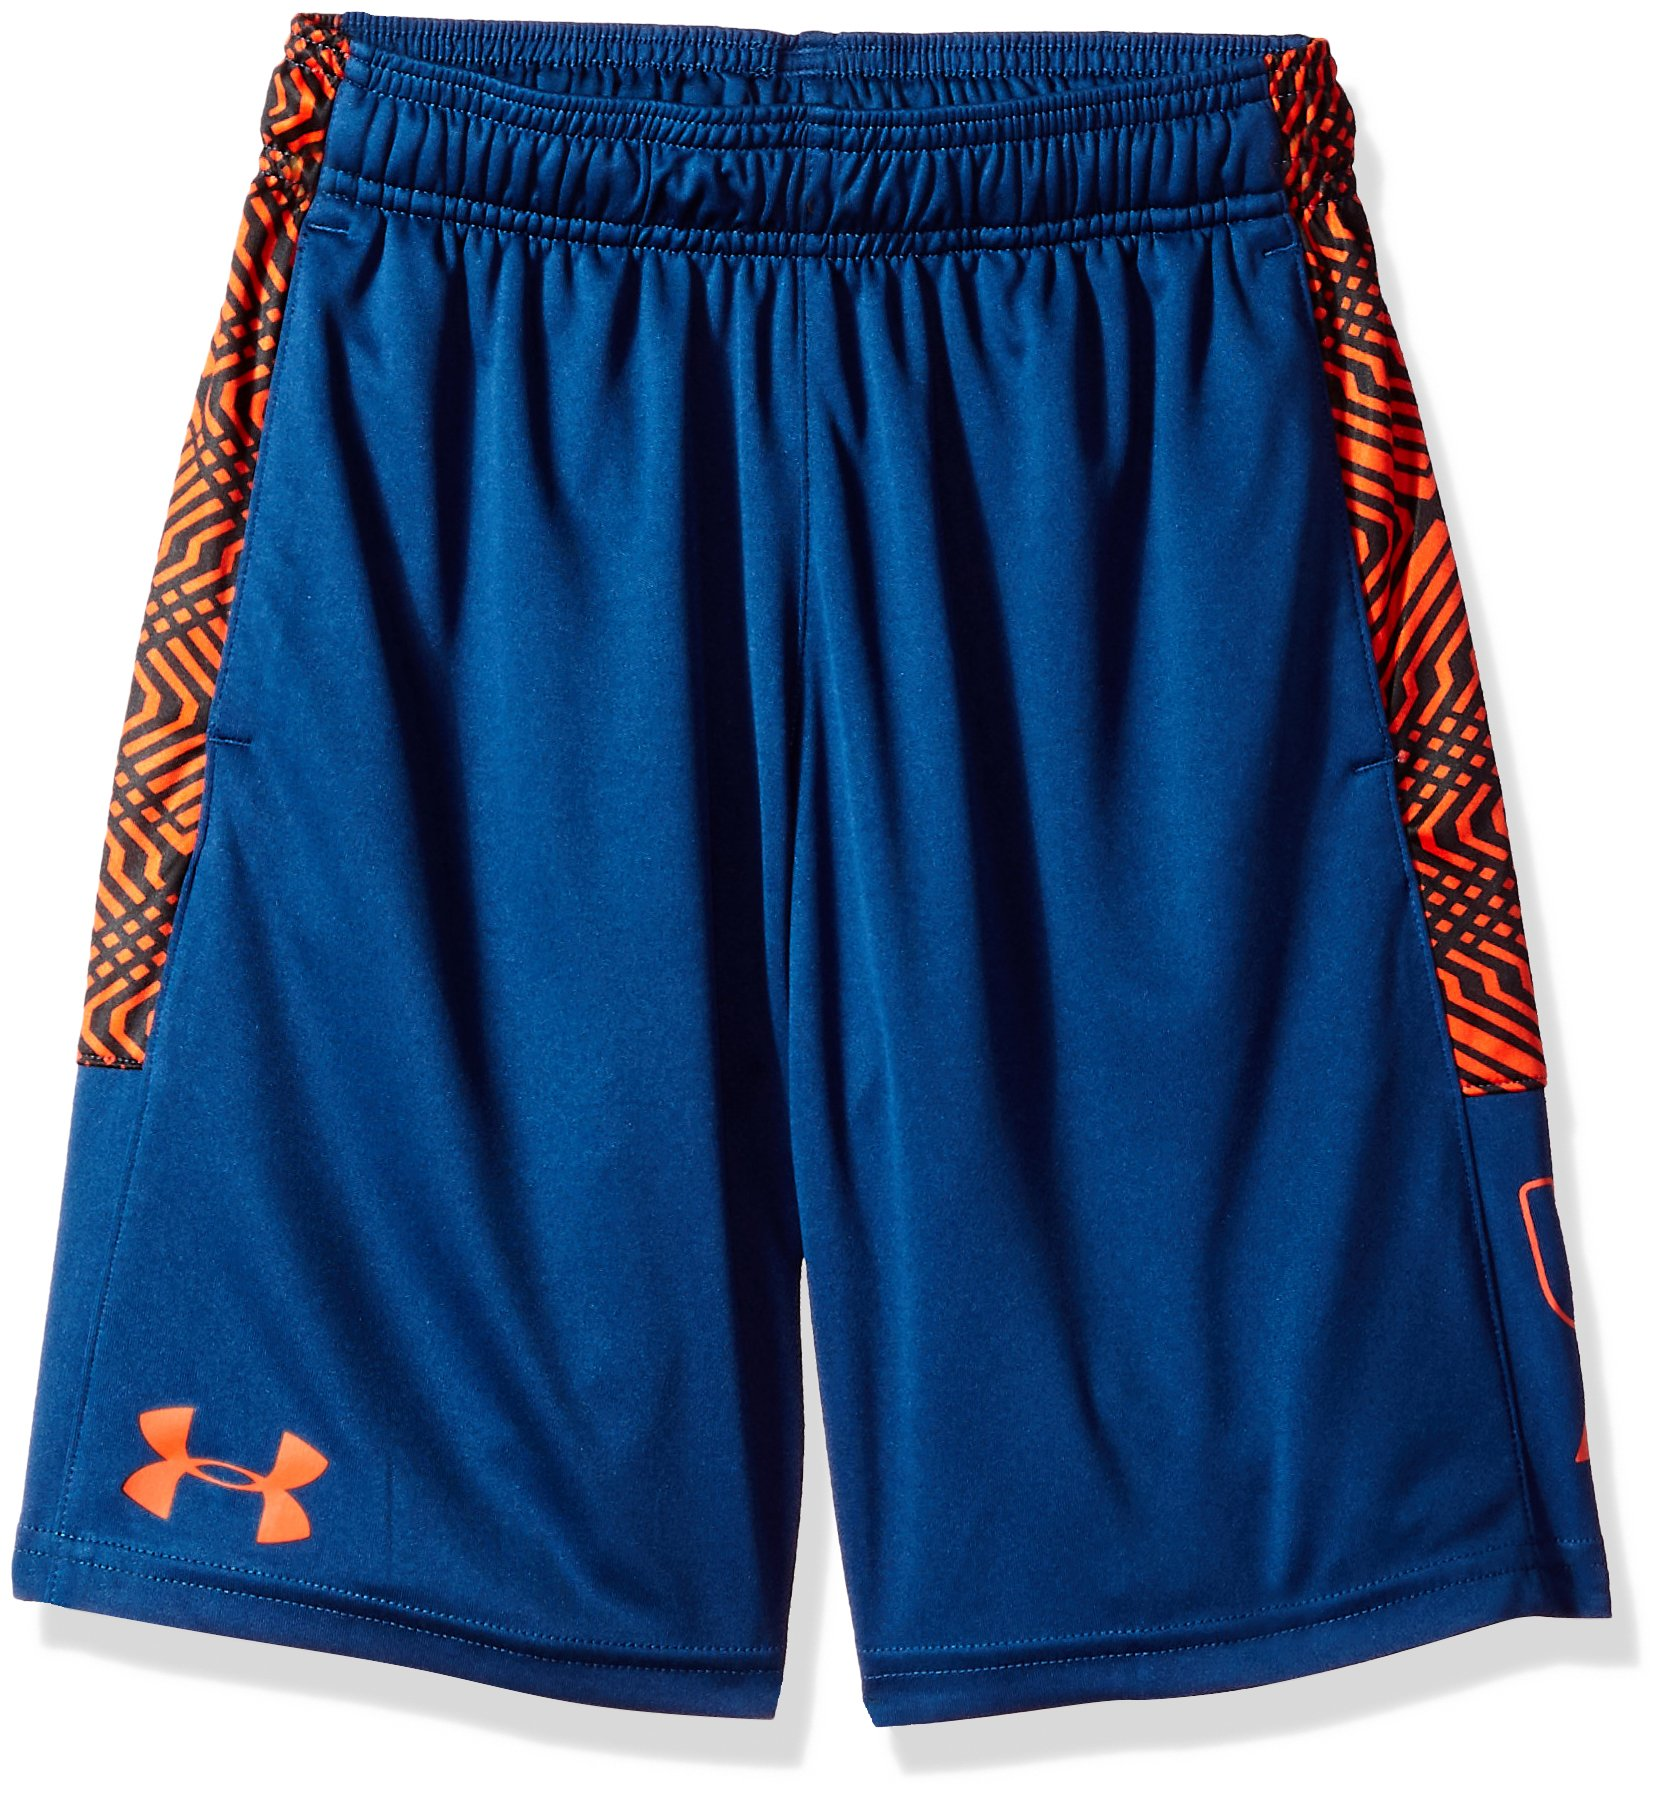 Under Armour Boys' Instinct Printed Shorts, Blackout Navy /Overcast Gray Youth X-Small